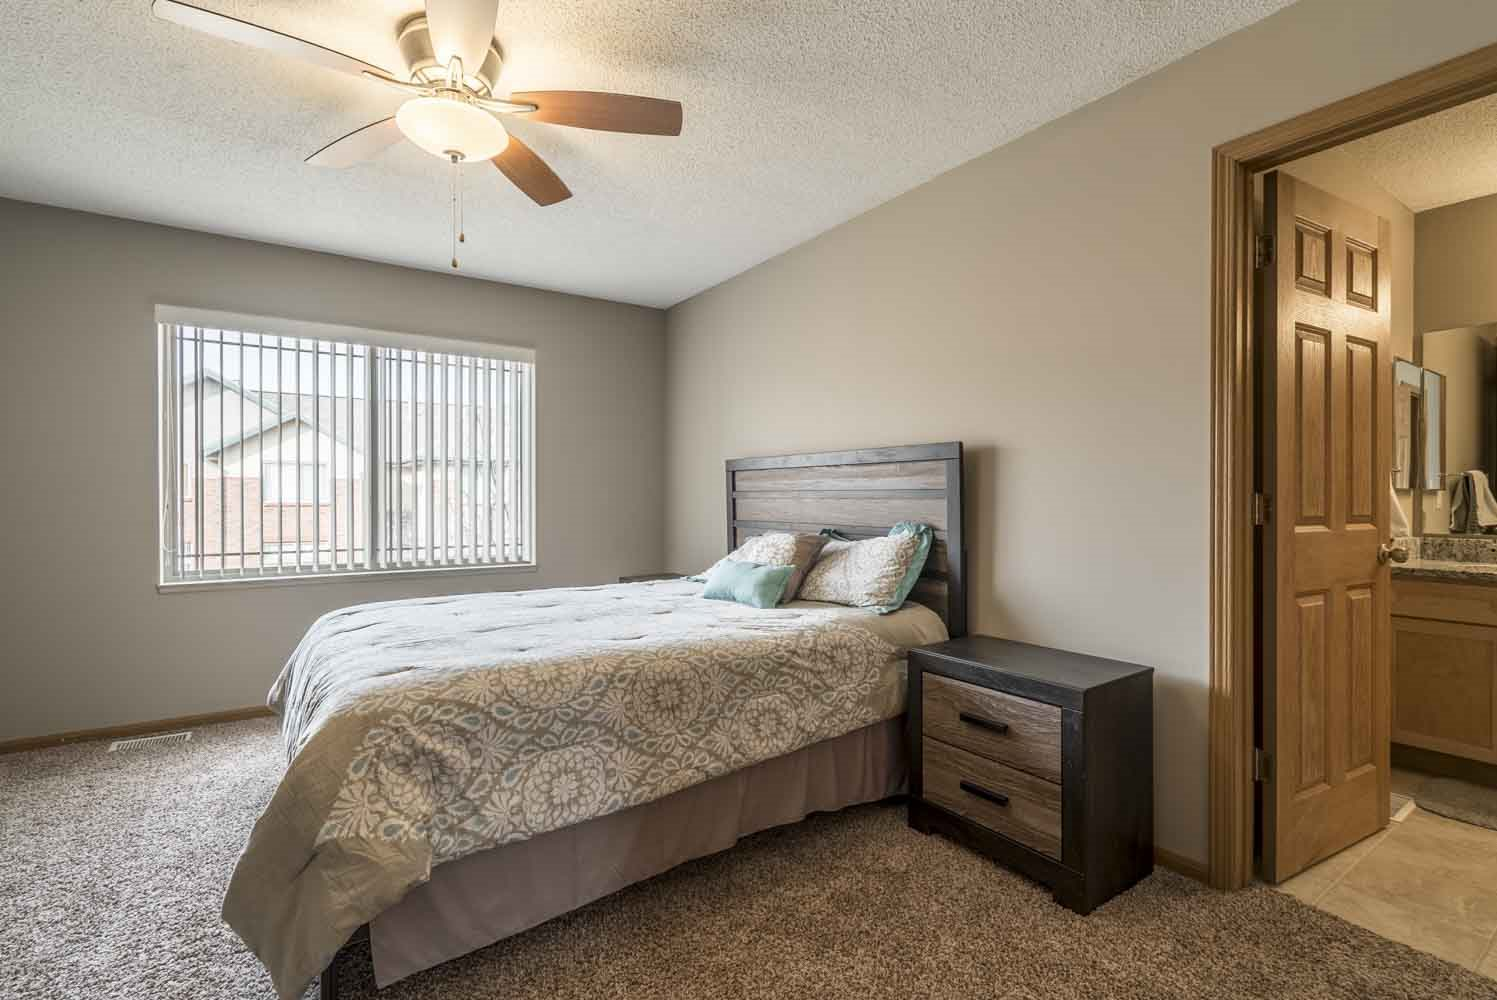 Master bedroom with attached bathroom and ceiling fan at Southwind Villas in southwest Omaha in La Vista, NE, 68128